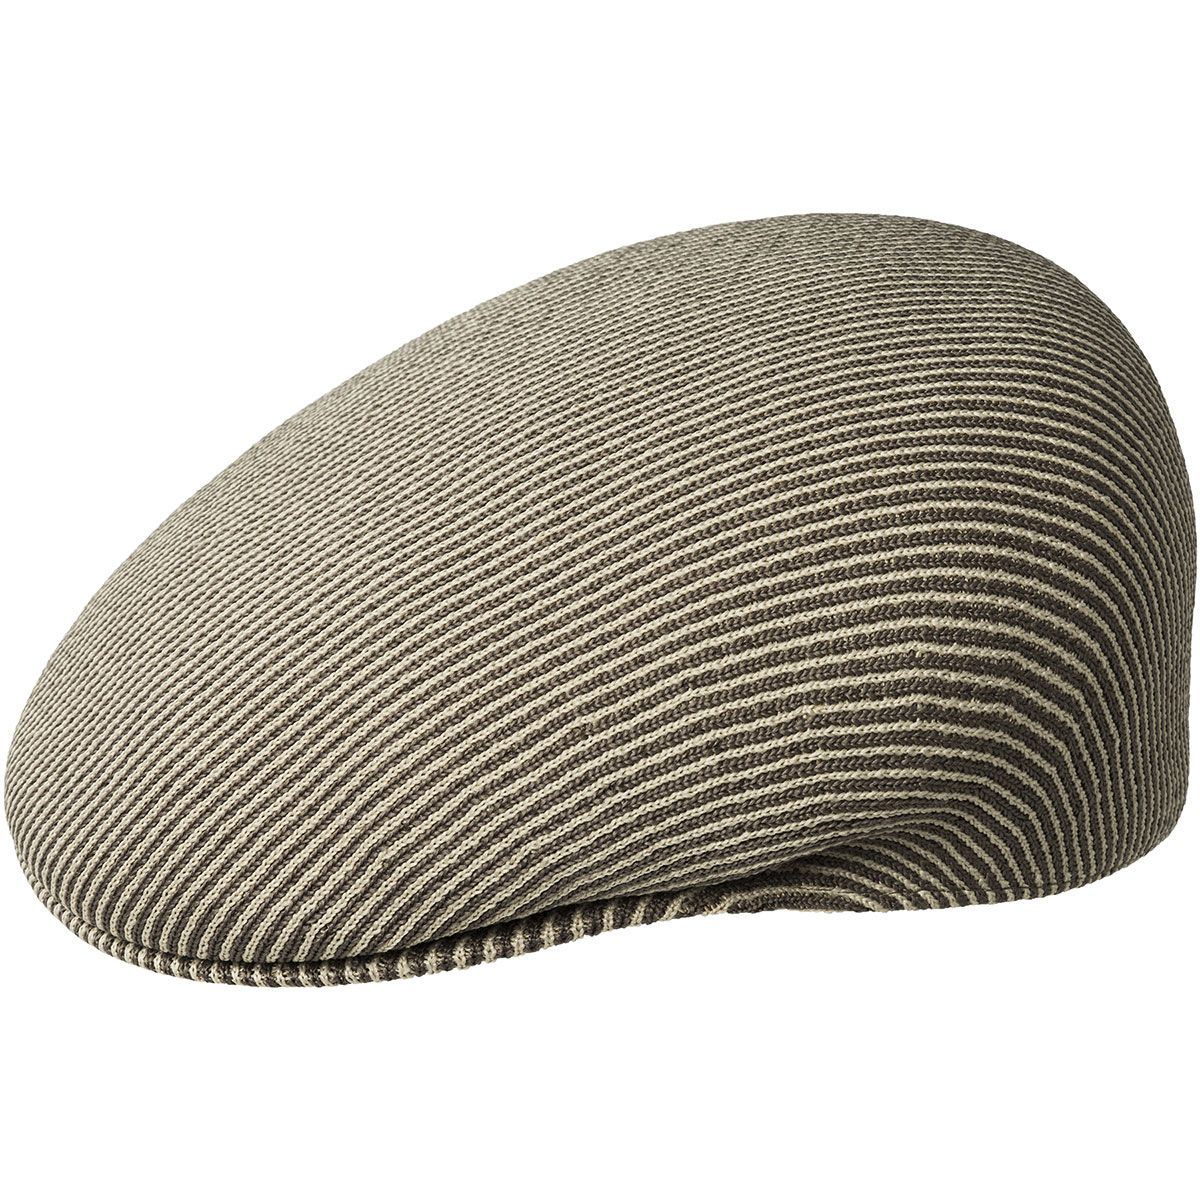 1b3f1d48c3a45 Stripe 504 Cap by Kangol – Levine Hat Co.